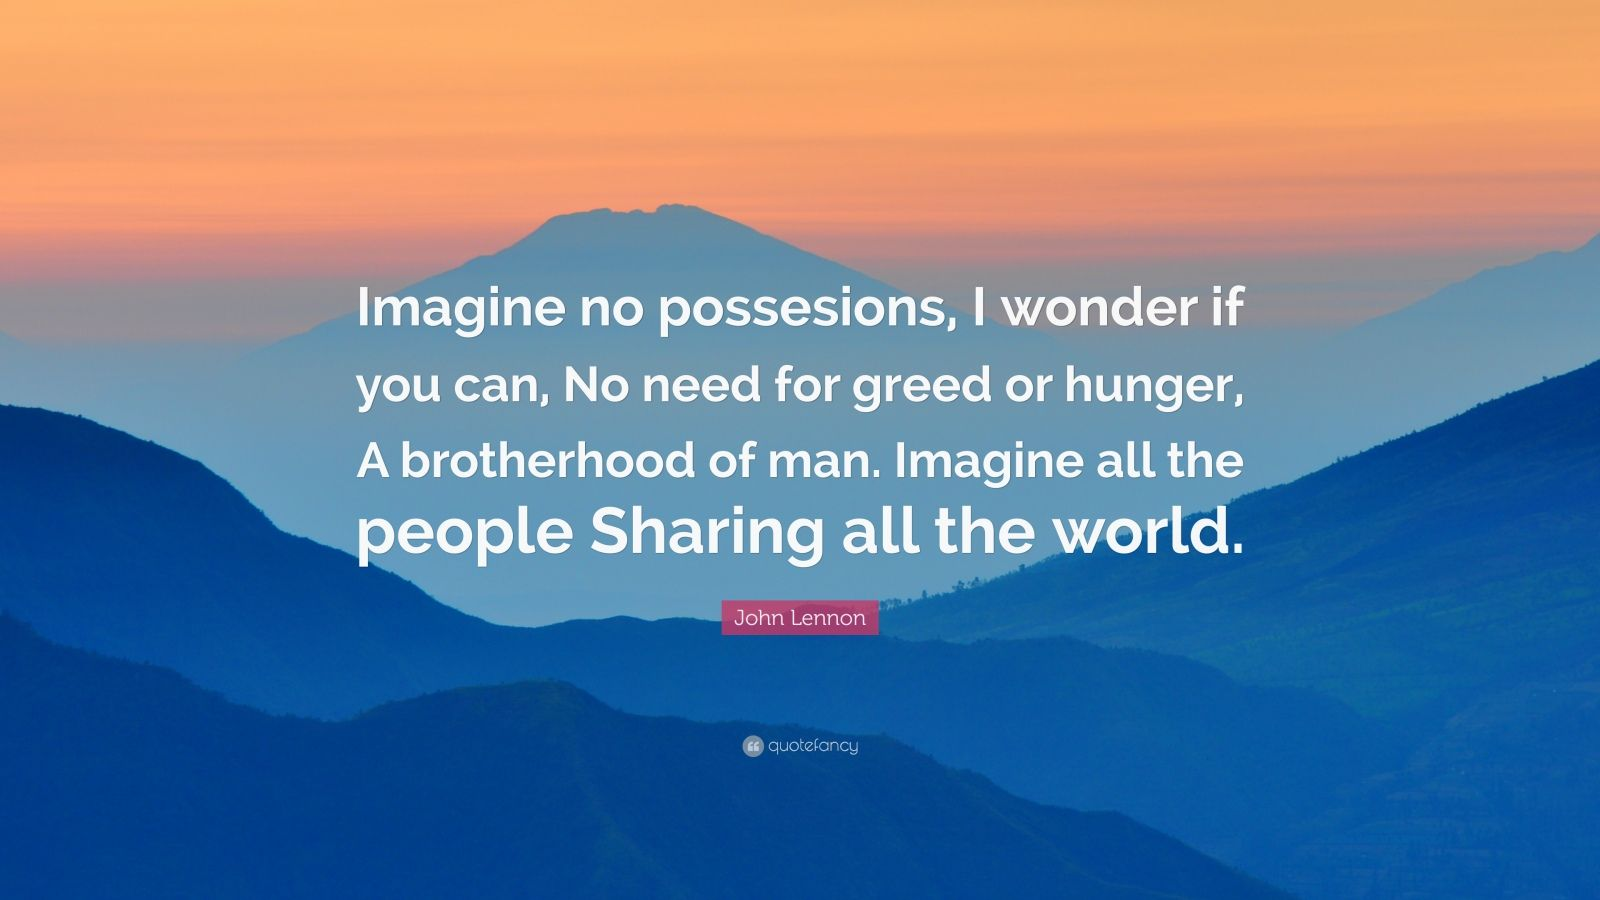 """John Lennon Quote: """"Imagine no possesions, I wonder if you can, No need for greed or hunger, A brotherhood of man. Imagine all the people Sharing all the world."""""""